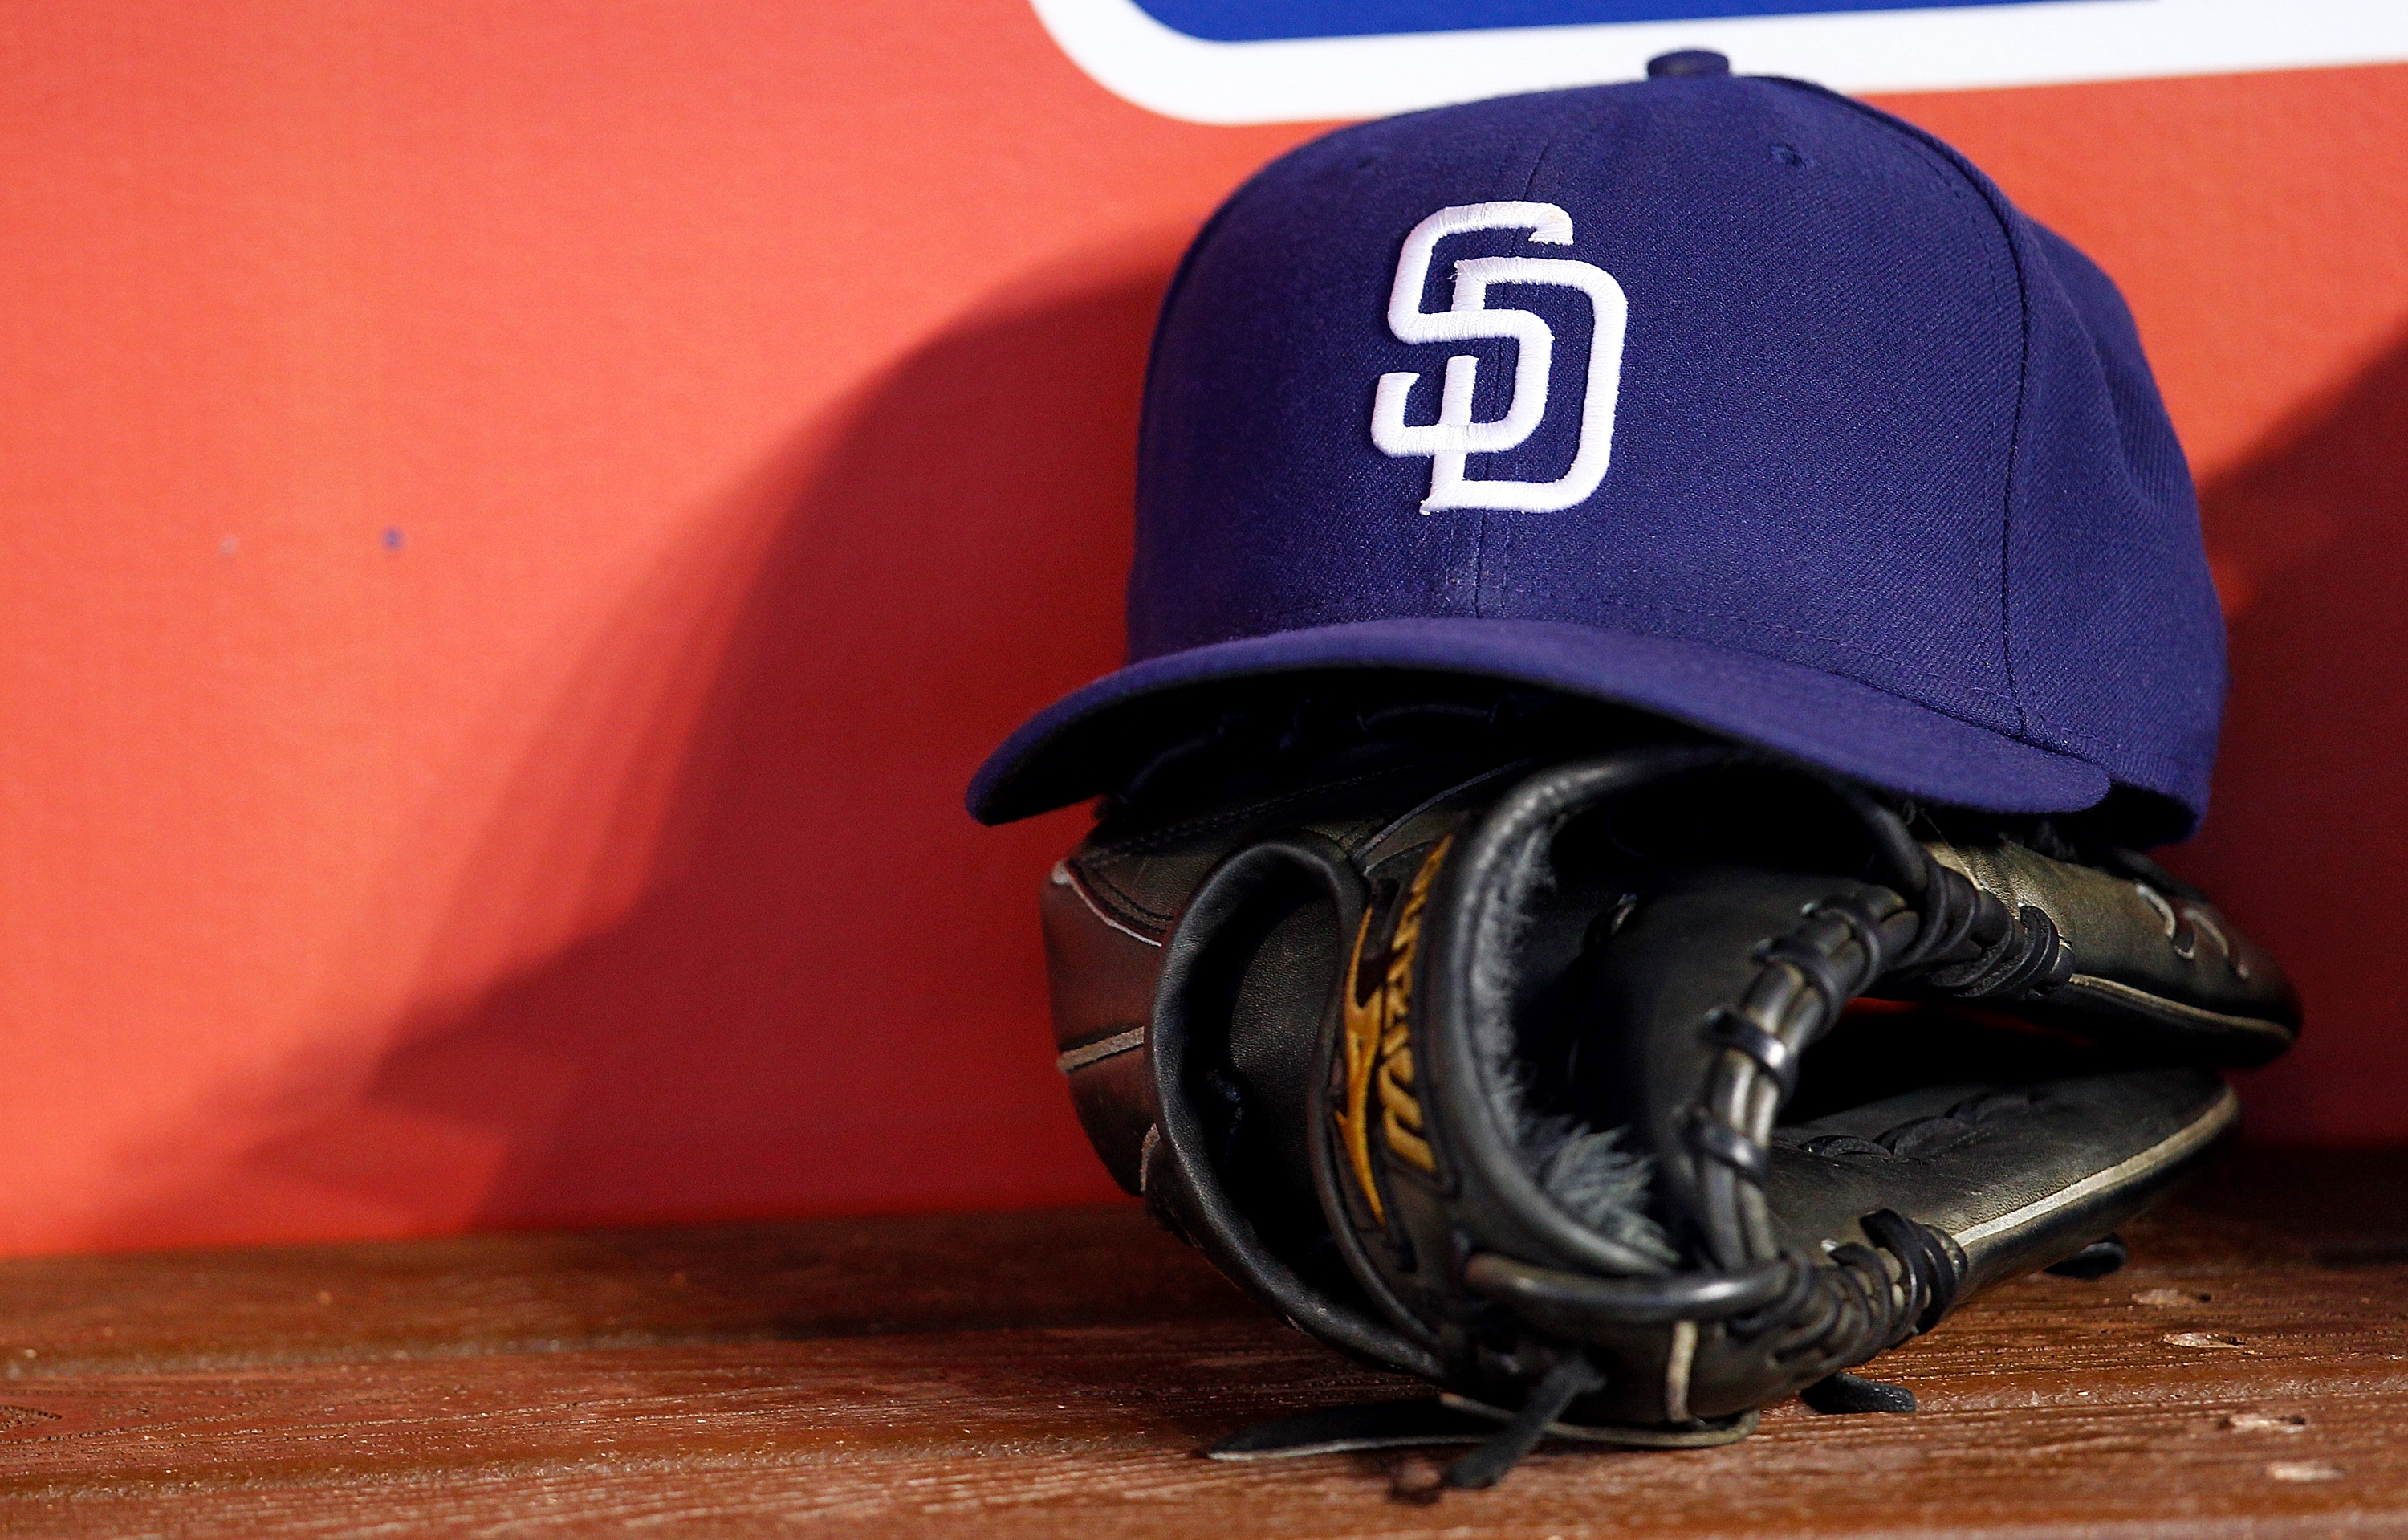 The San Diego Padres have reportedly narrowed their GM search to four finalists